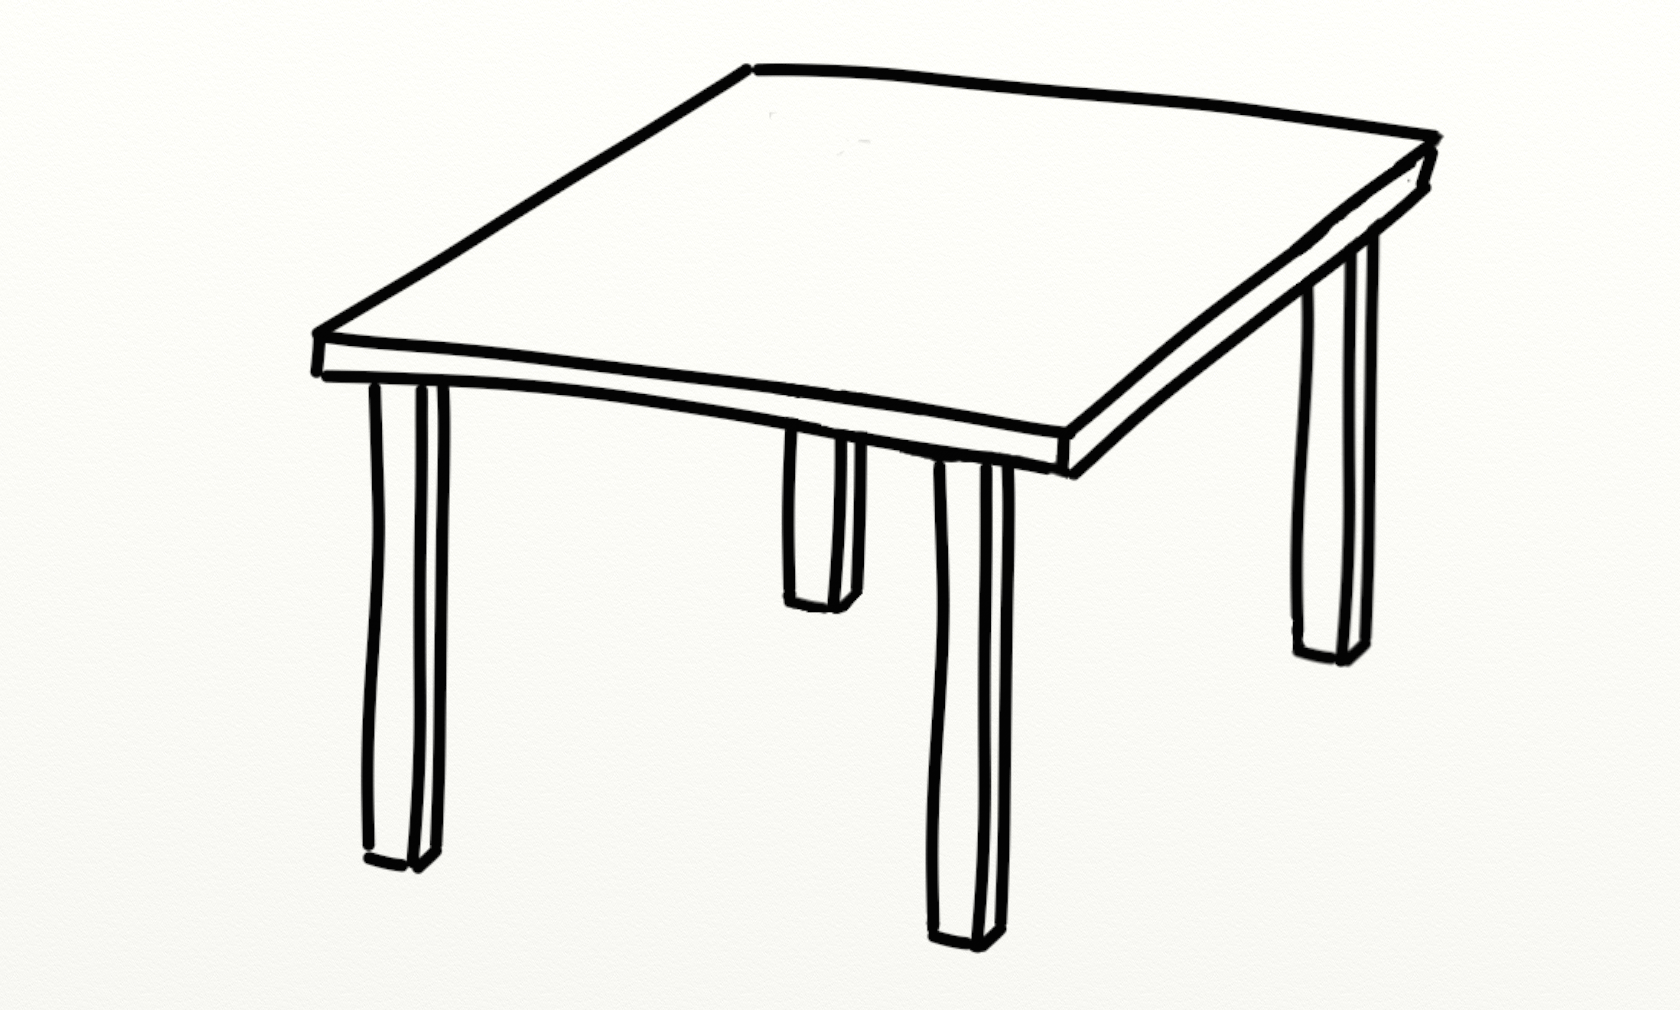 hight resolution of table clipart black and white